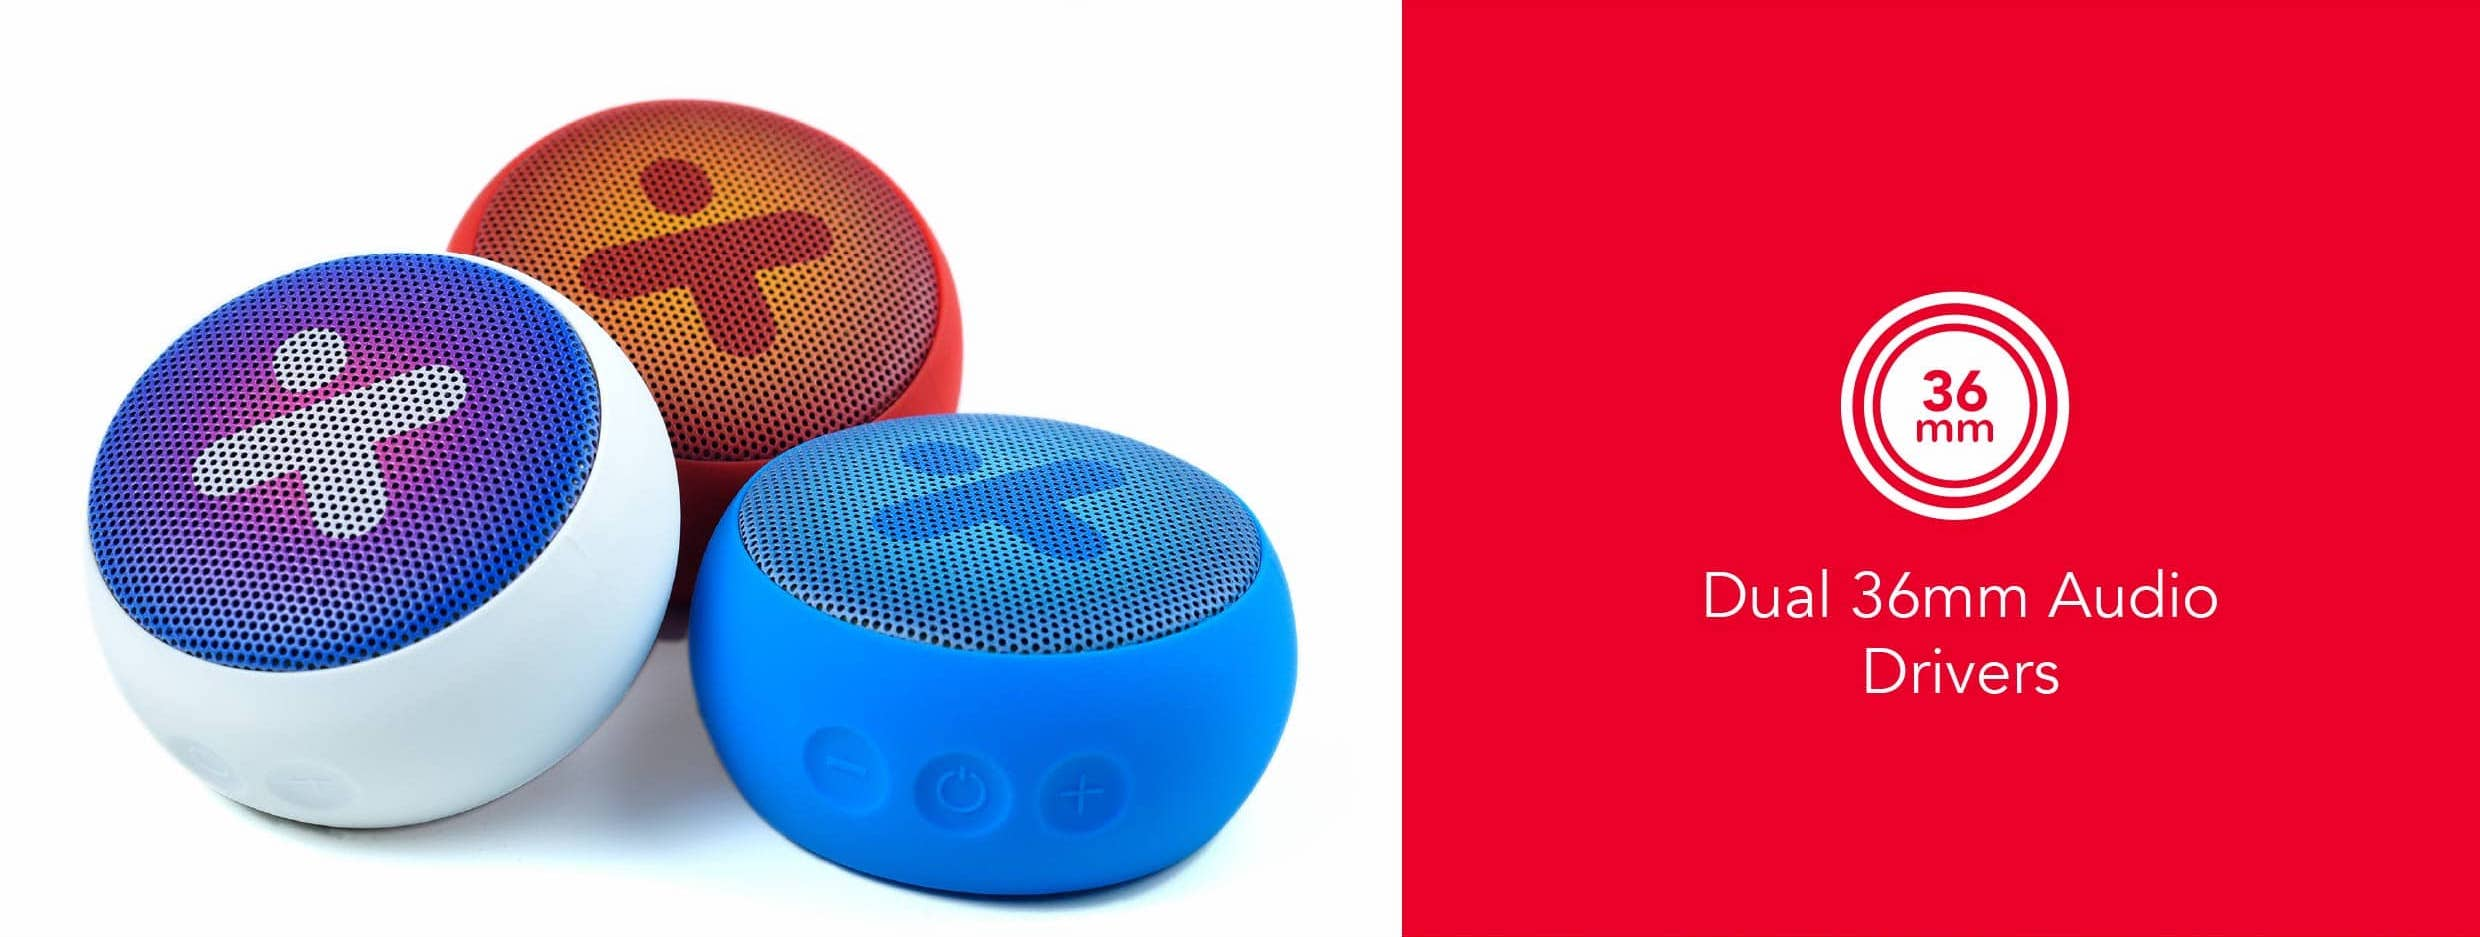 X-mini-Kai-X1-W-Waterproof-True-Wireless-Bluetooth-Portable-Speaker-Dual-36mm-Audio-Drivers